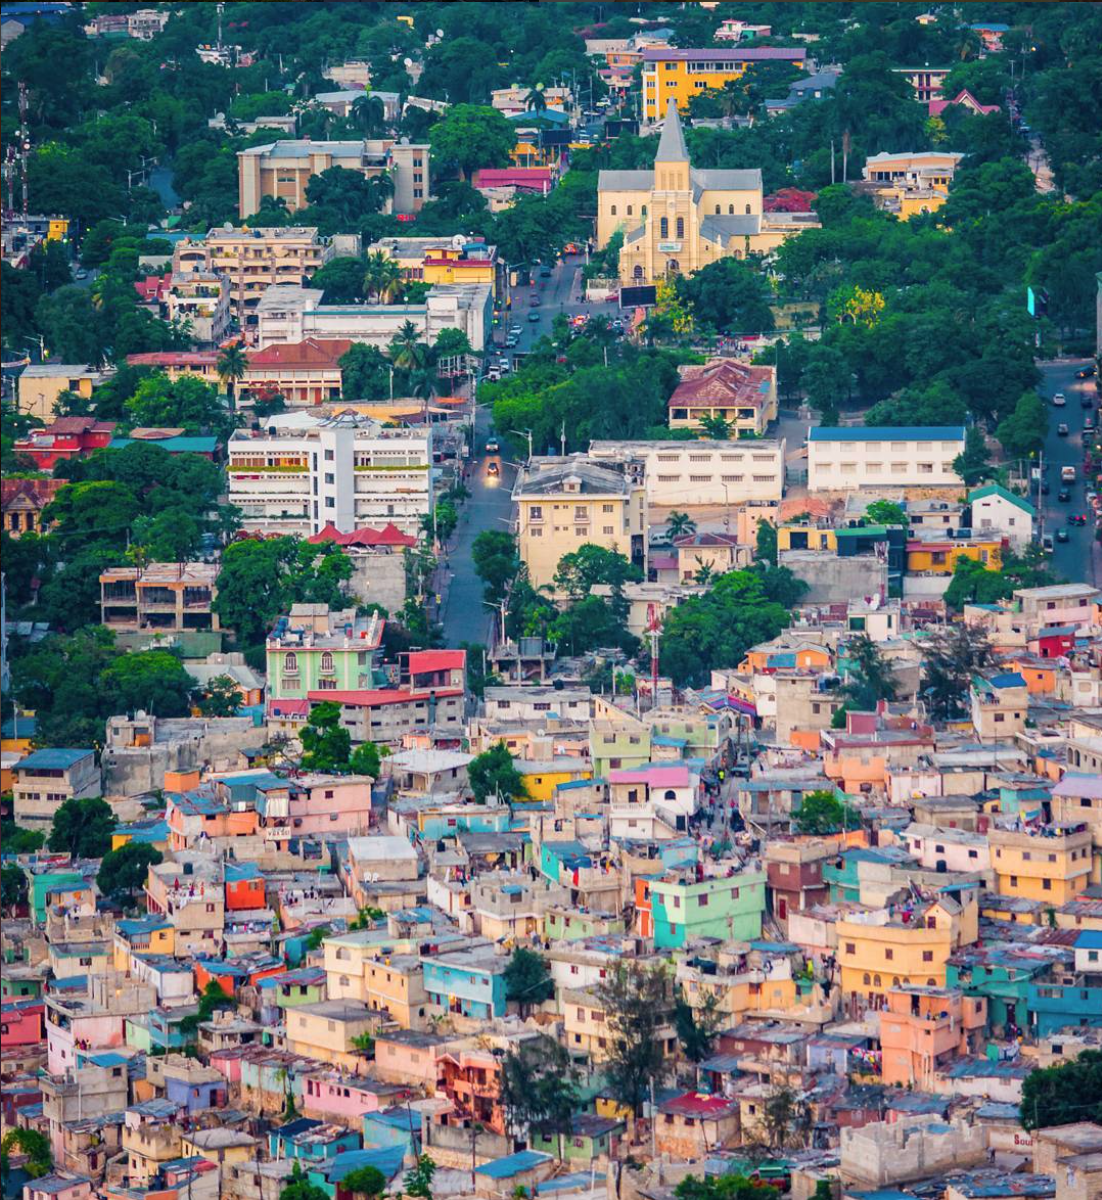 PETION-VILLE - A place where chaos and serenity co-exist, where modern cafés and street vendors alike share the same recipes. A city of contrasts.Pétion-Ville is the home of Haiti's small commerce. The center for restaurants, bars and shops.Photo: @VerdyVerna